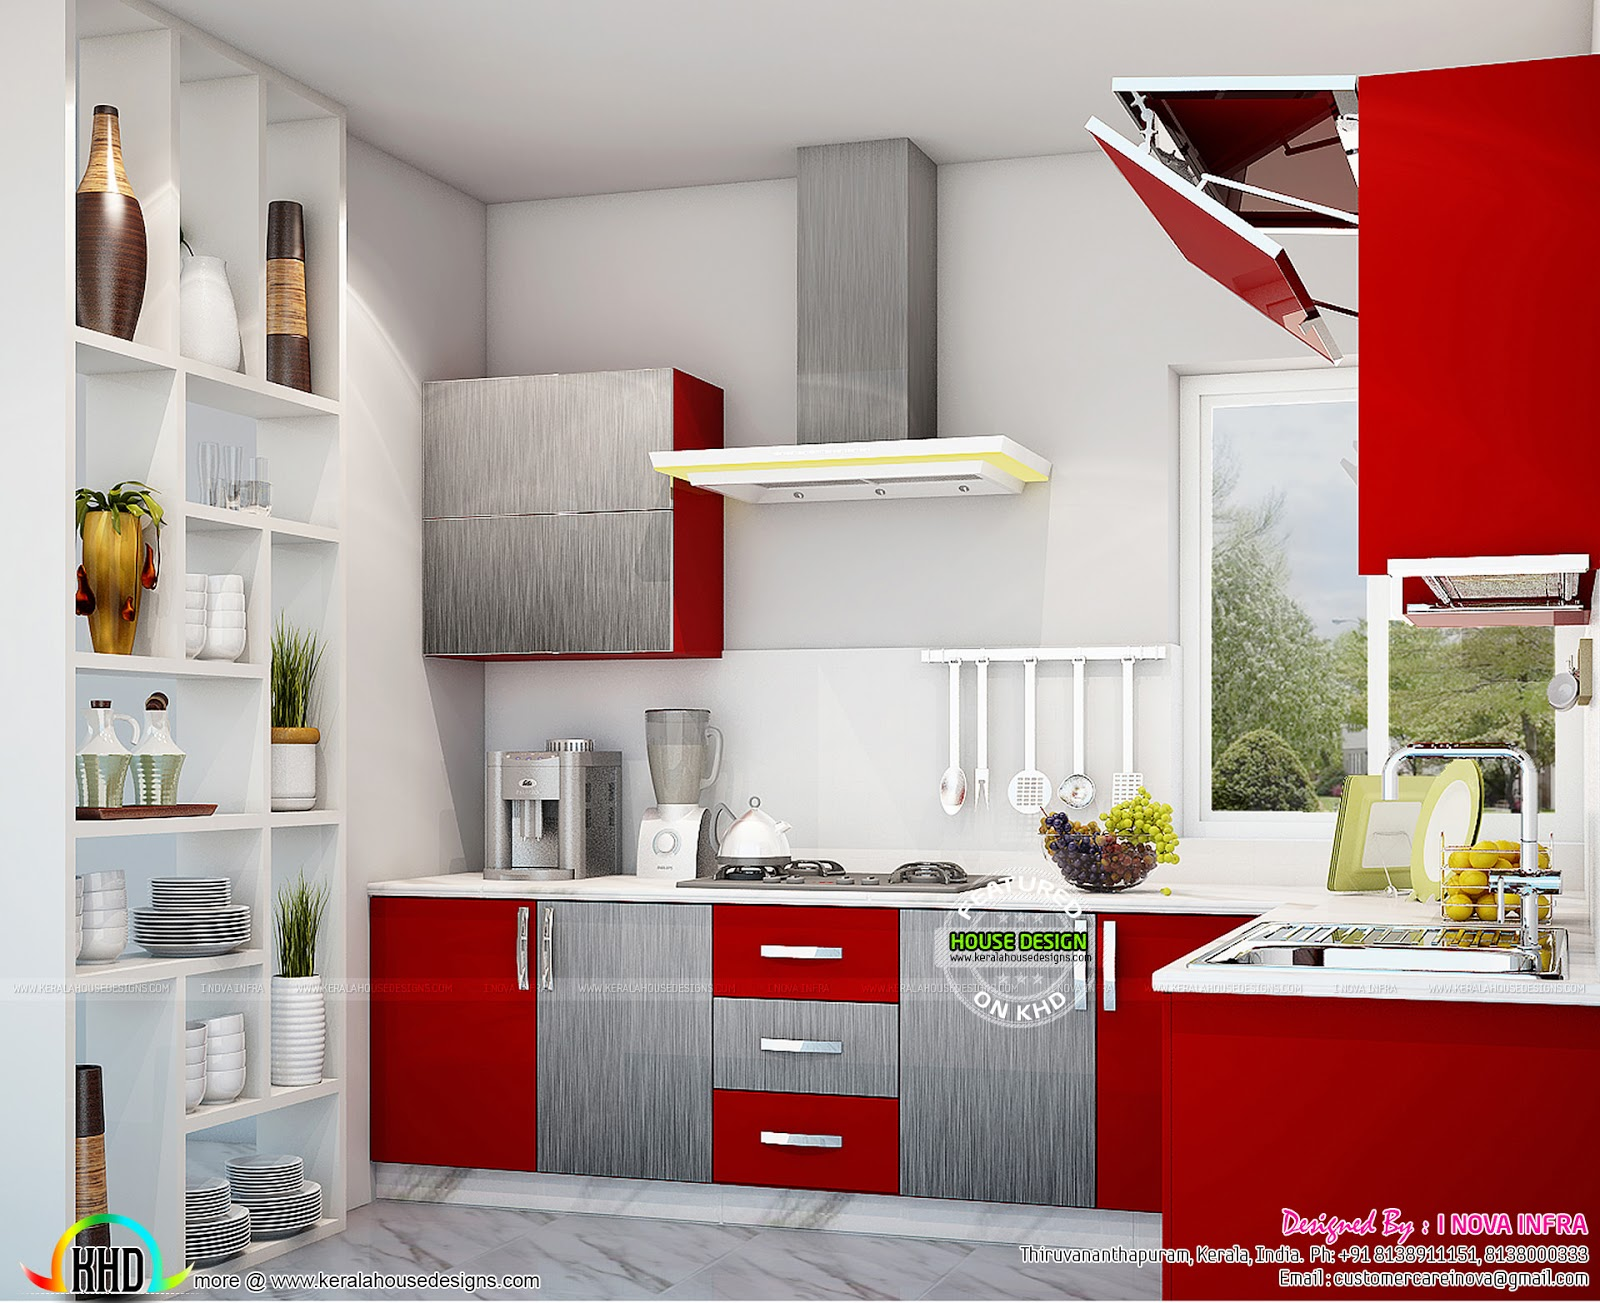 kitchen interior works at trivandrum kerala home design home nations indian home kitchen interior design